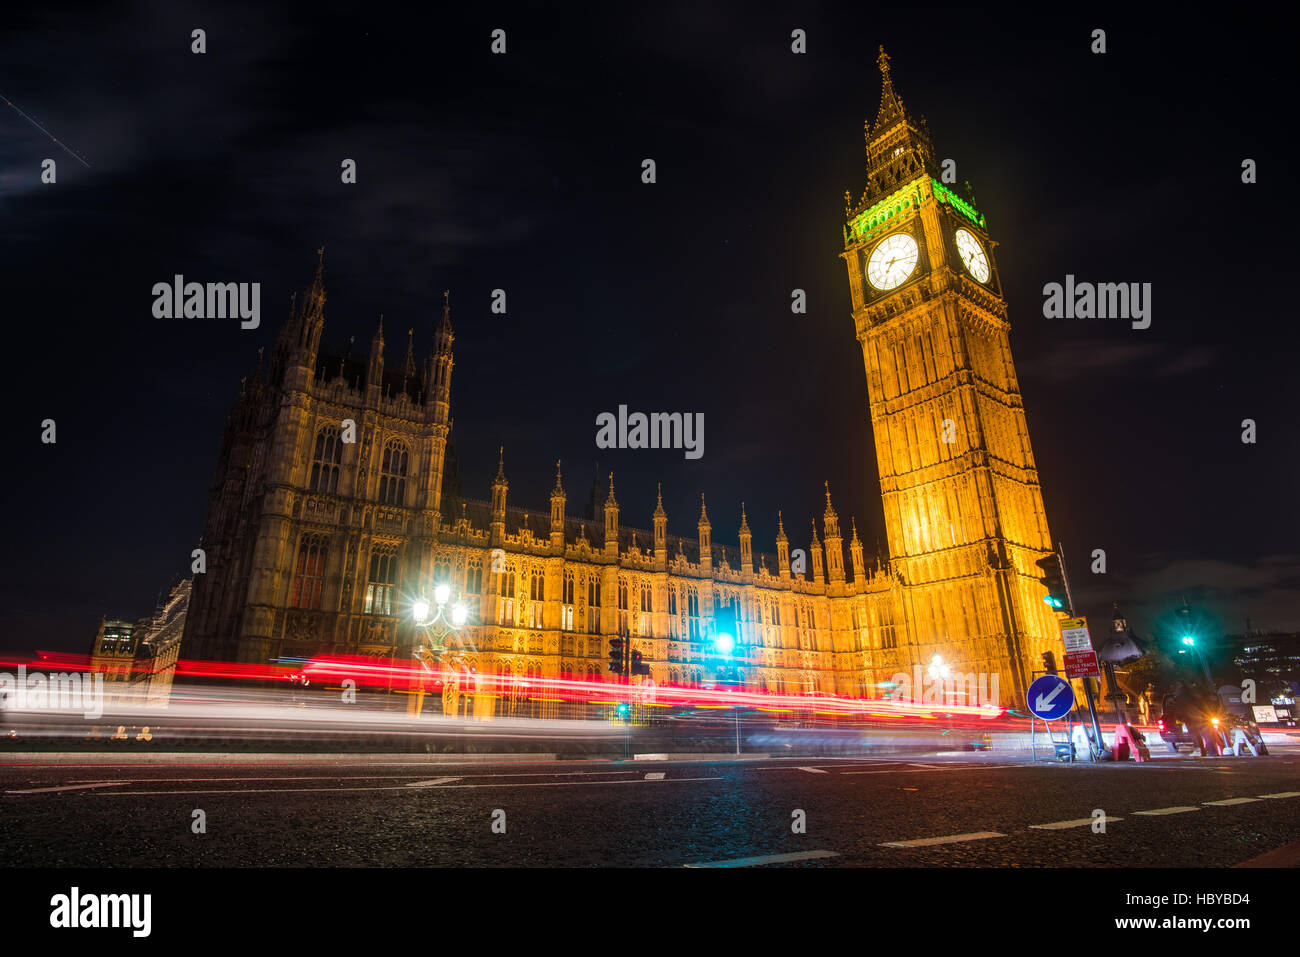 Night image of London's famous Big Ben - Stock Image